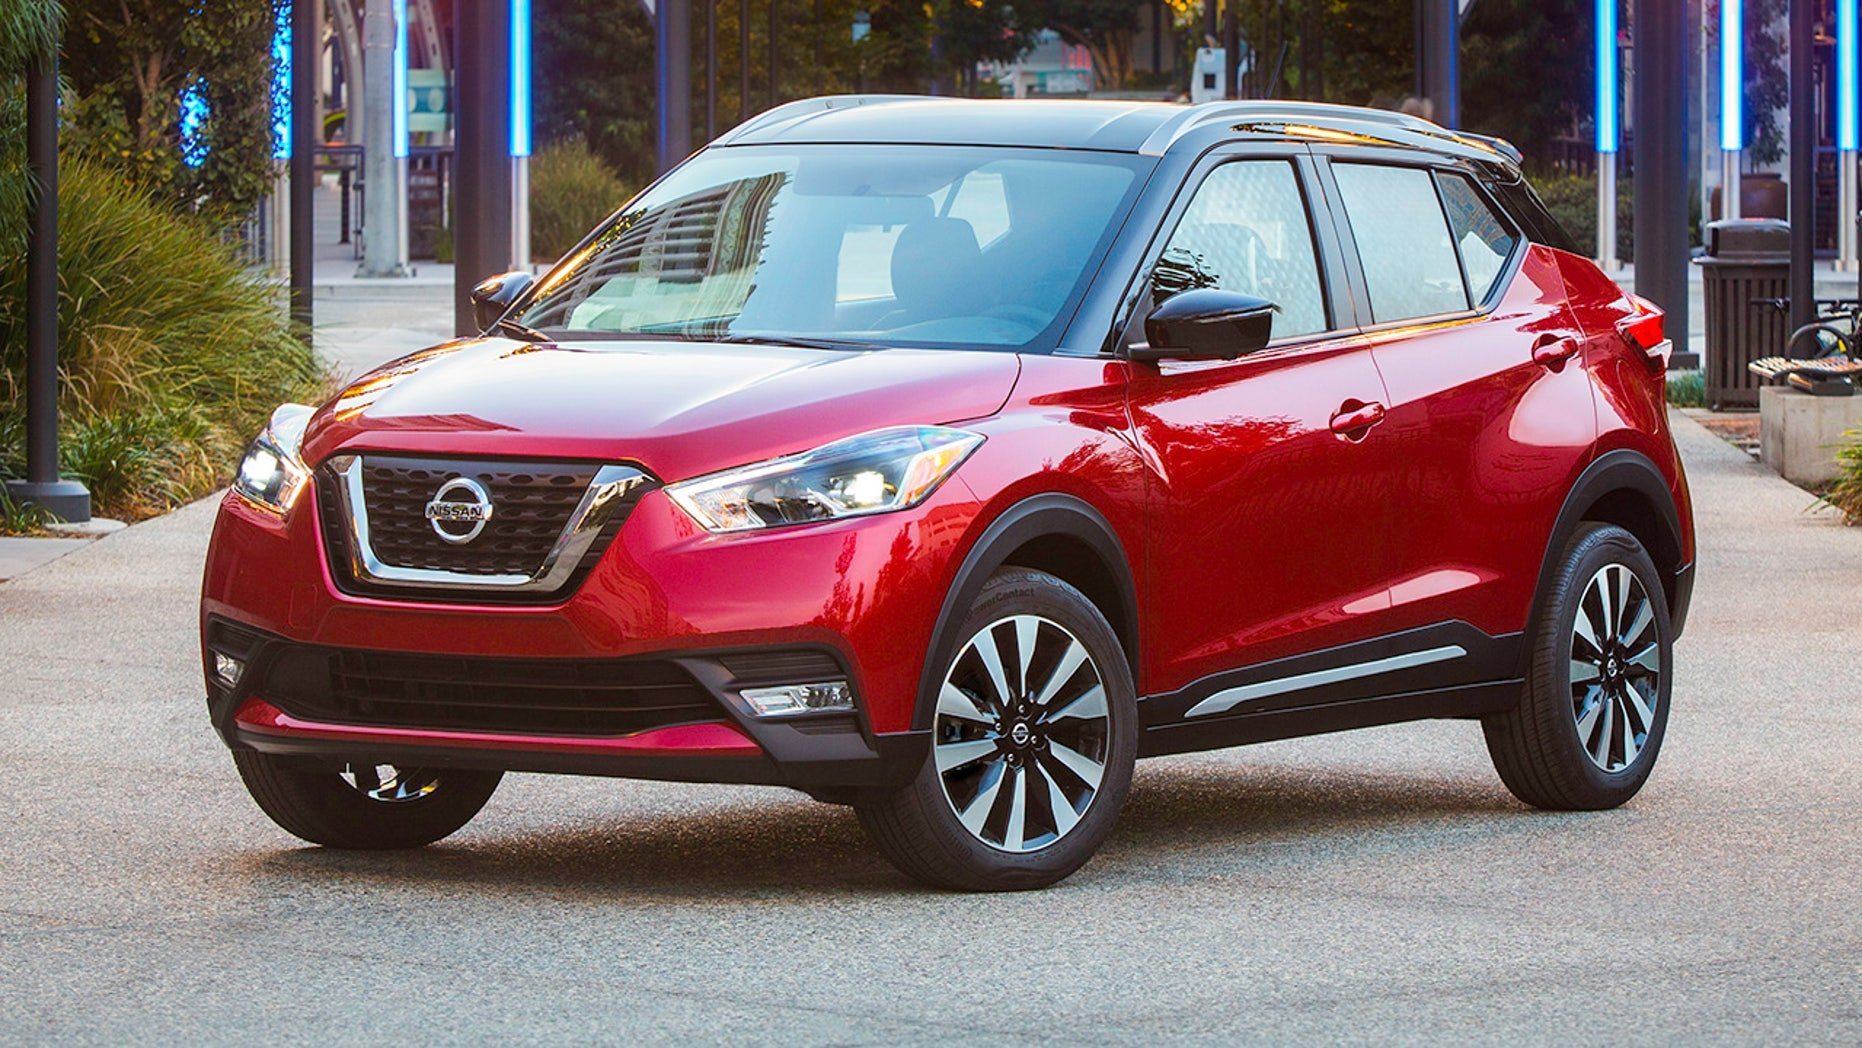 The All New 2018 Nissan Kicks, The Newest Entry In The Fast Growing